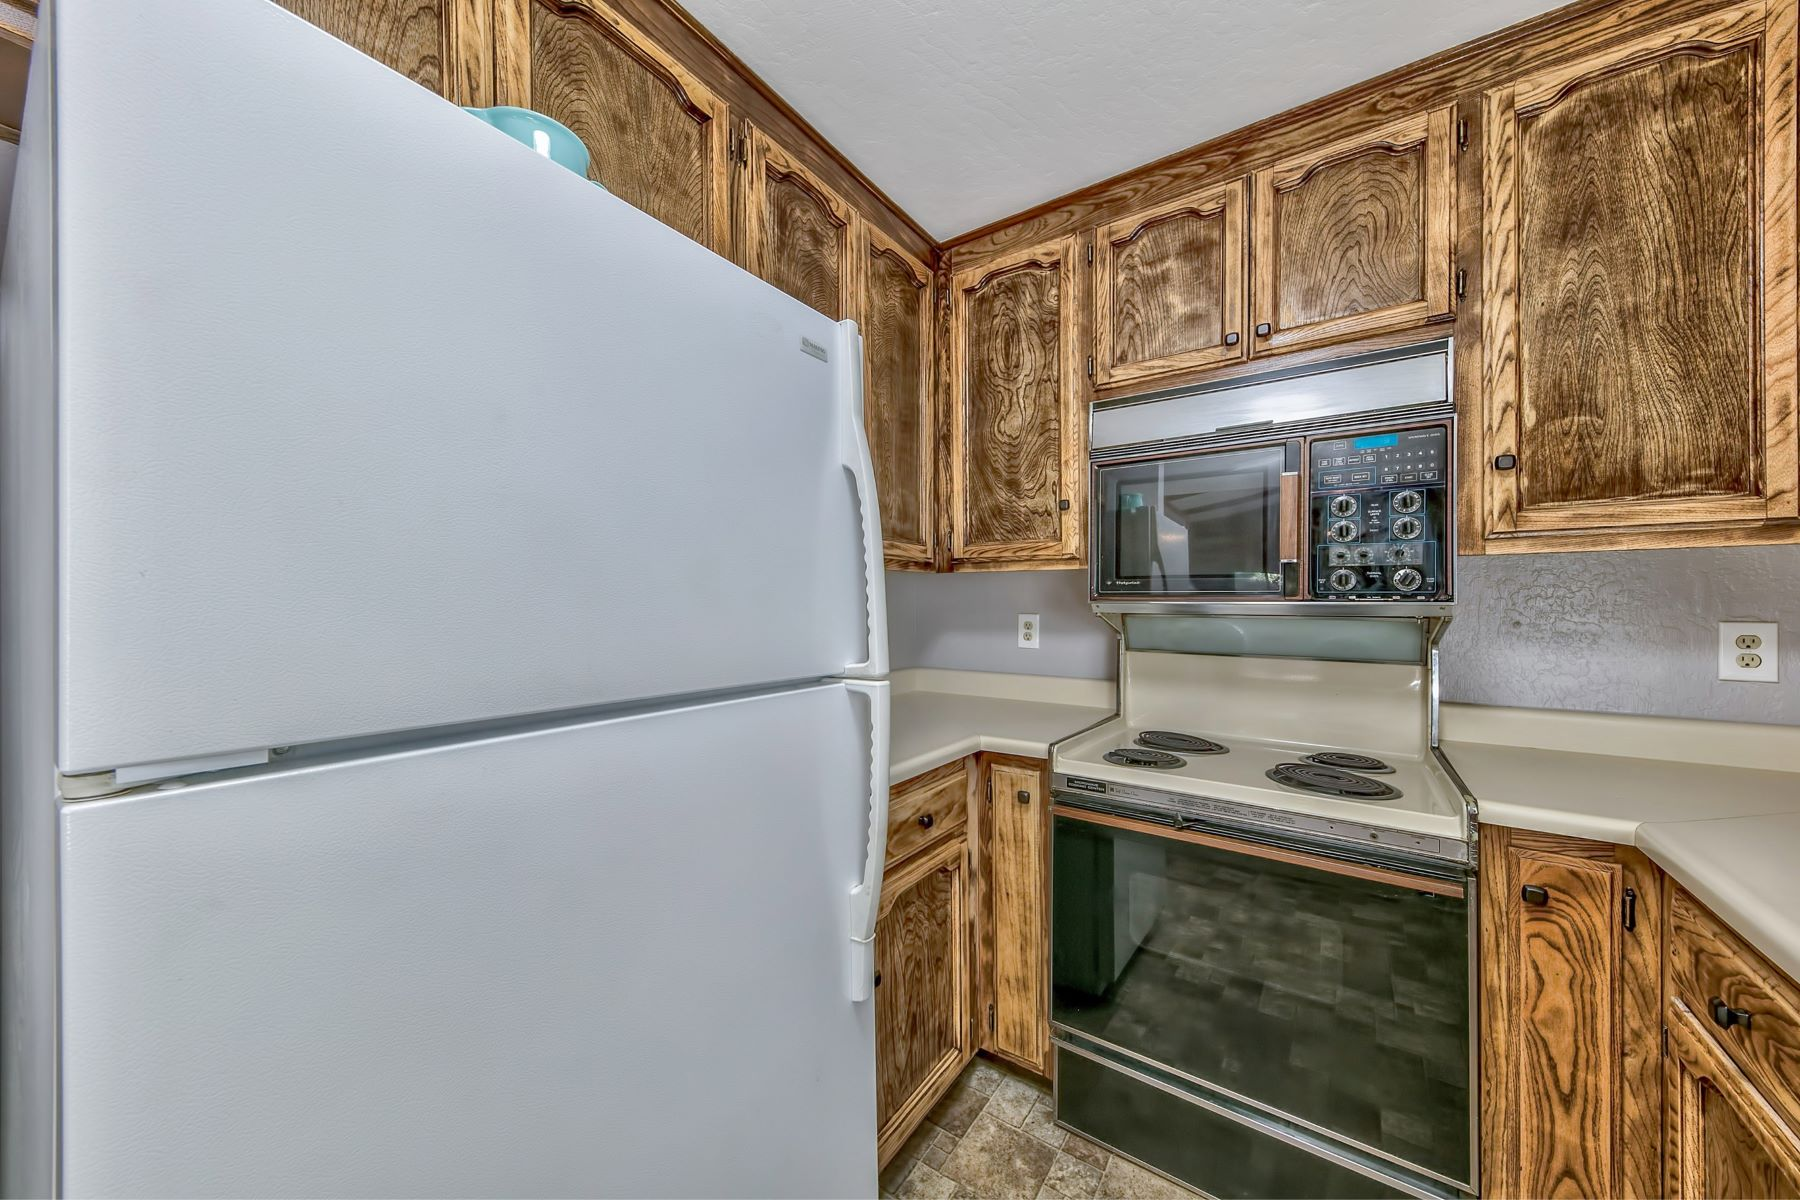 Additional photo for property listing at 167 Tramway Drive, Unit B, Stateline, NV, 89449 167 Tramway Dr. #B Stateline, Nevada 89449 United States